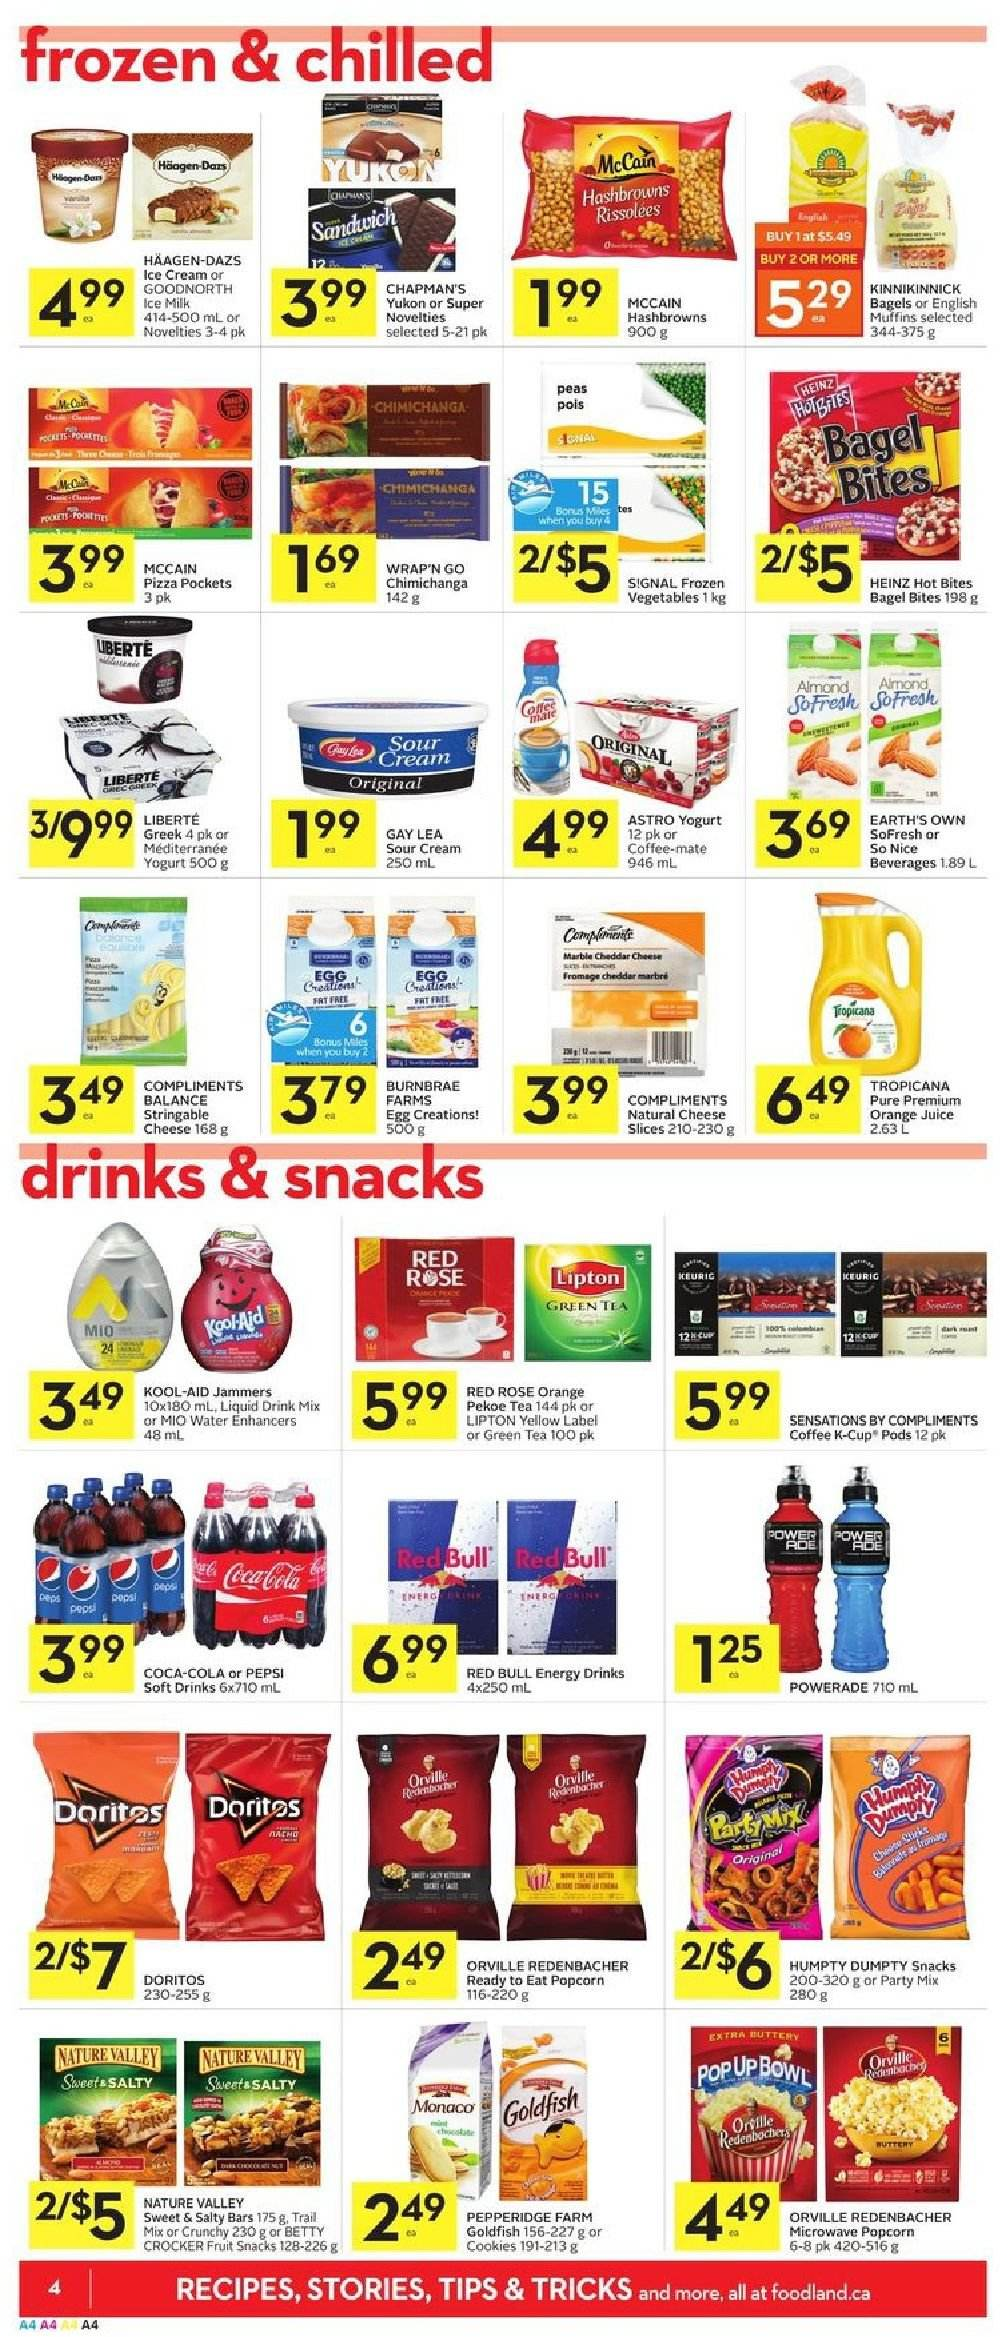 Foodland Flyer  - February 21, 2019 - February 27, 2019. Page 4.